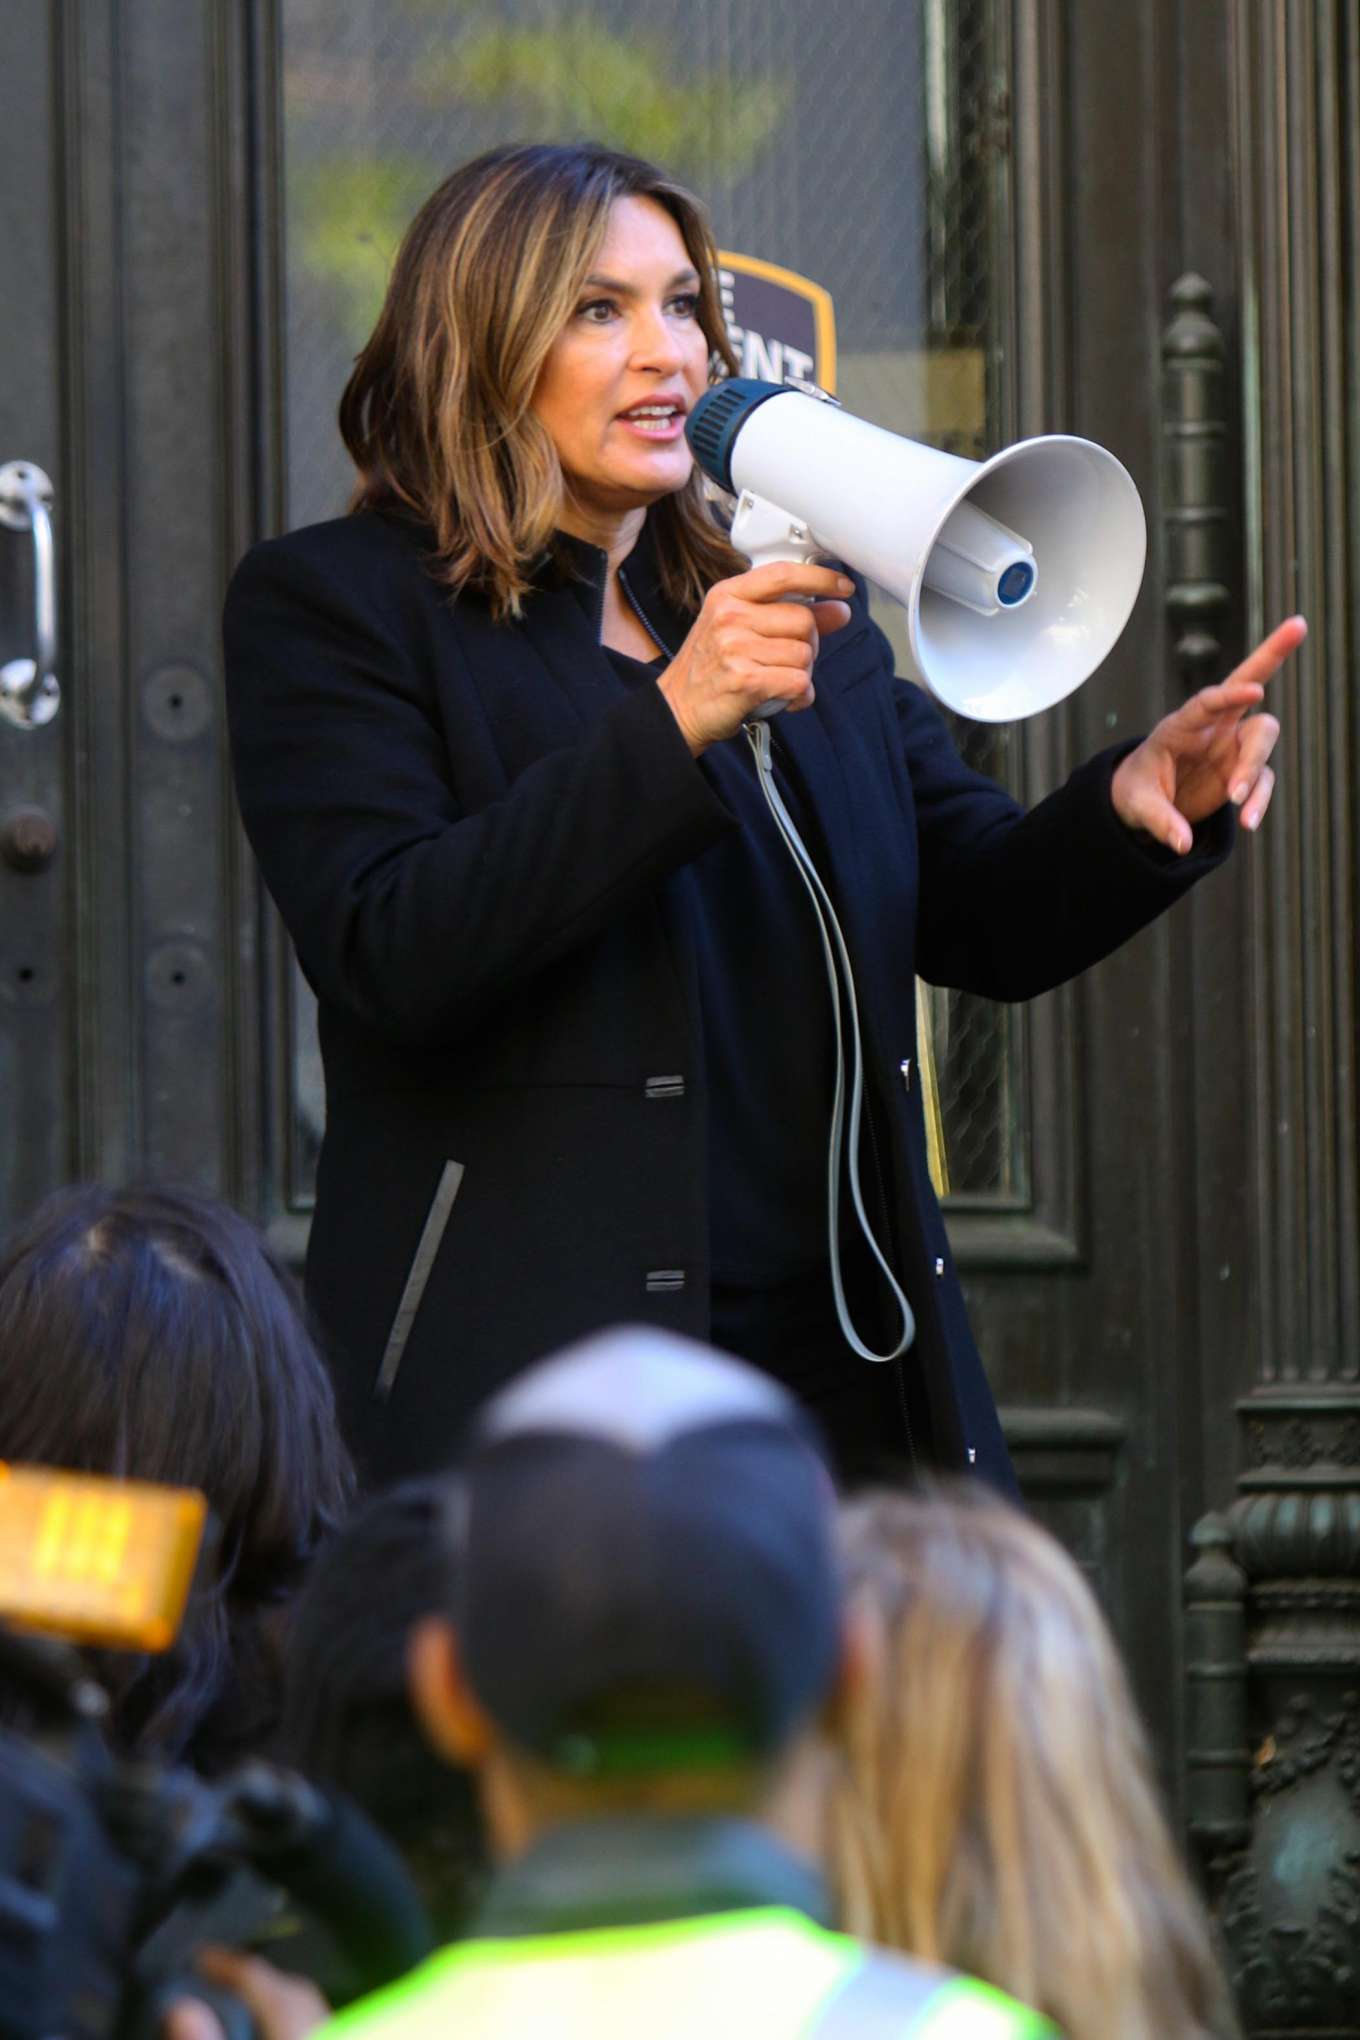 Mariska Hargitay - On the set of 'Law and Order: Special Victims Unit' in NYC